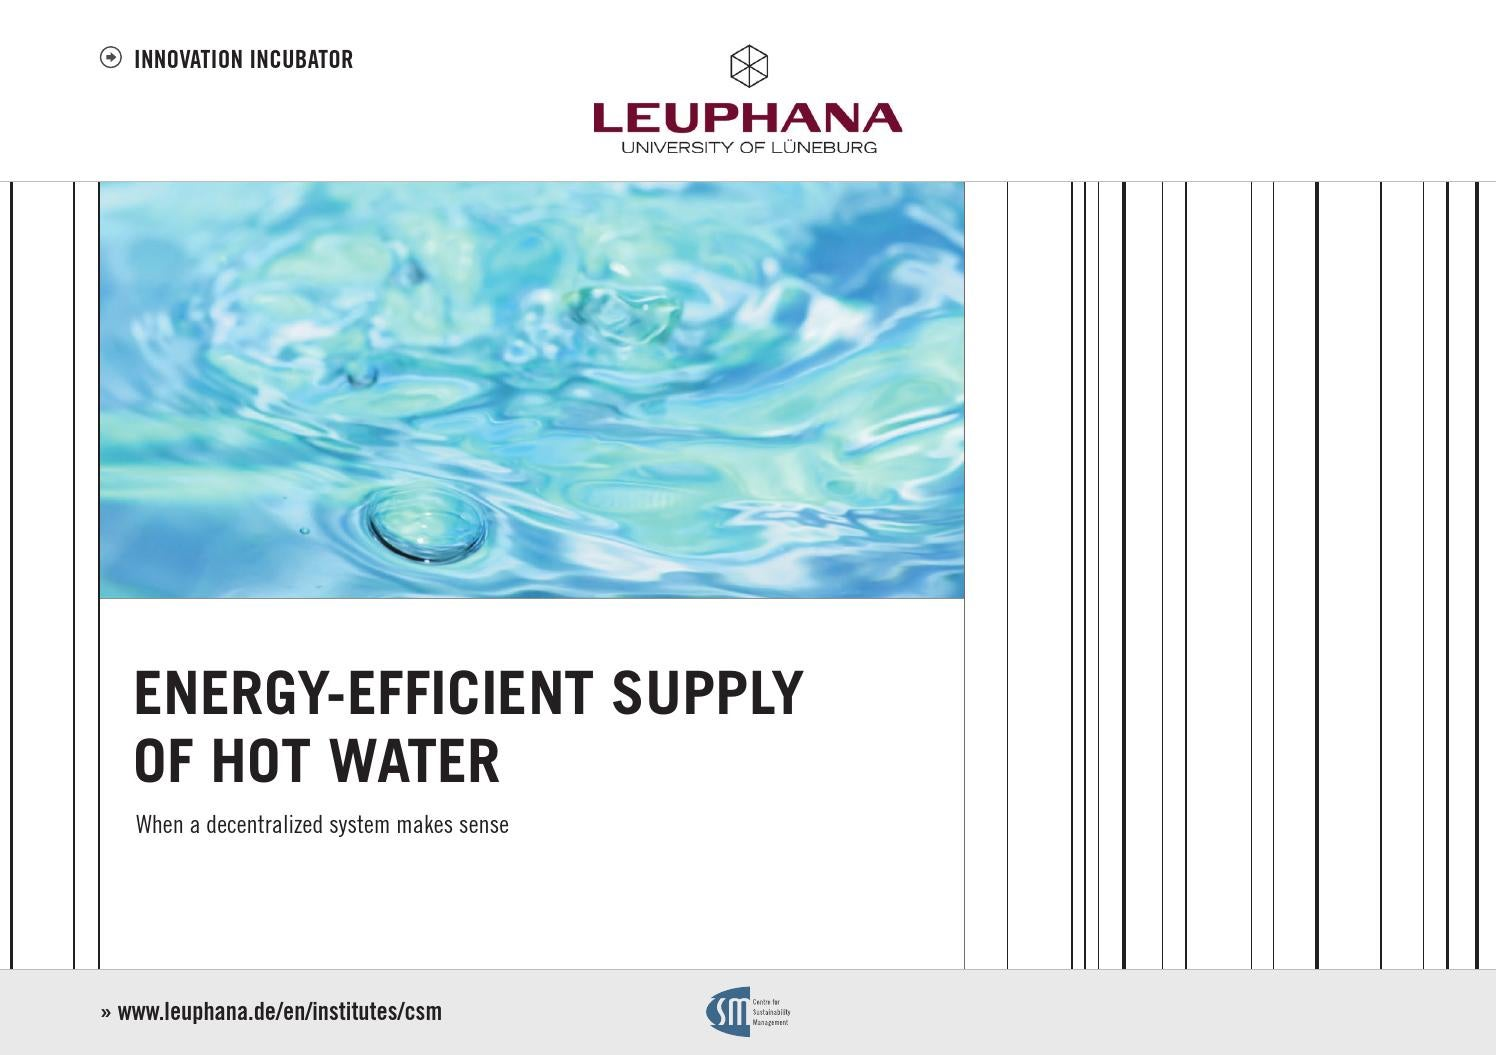 ENERGY-EFFICIENT SUPPLY OF HOT WATER – When a decentralized system ...